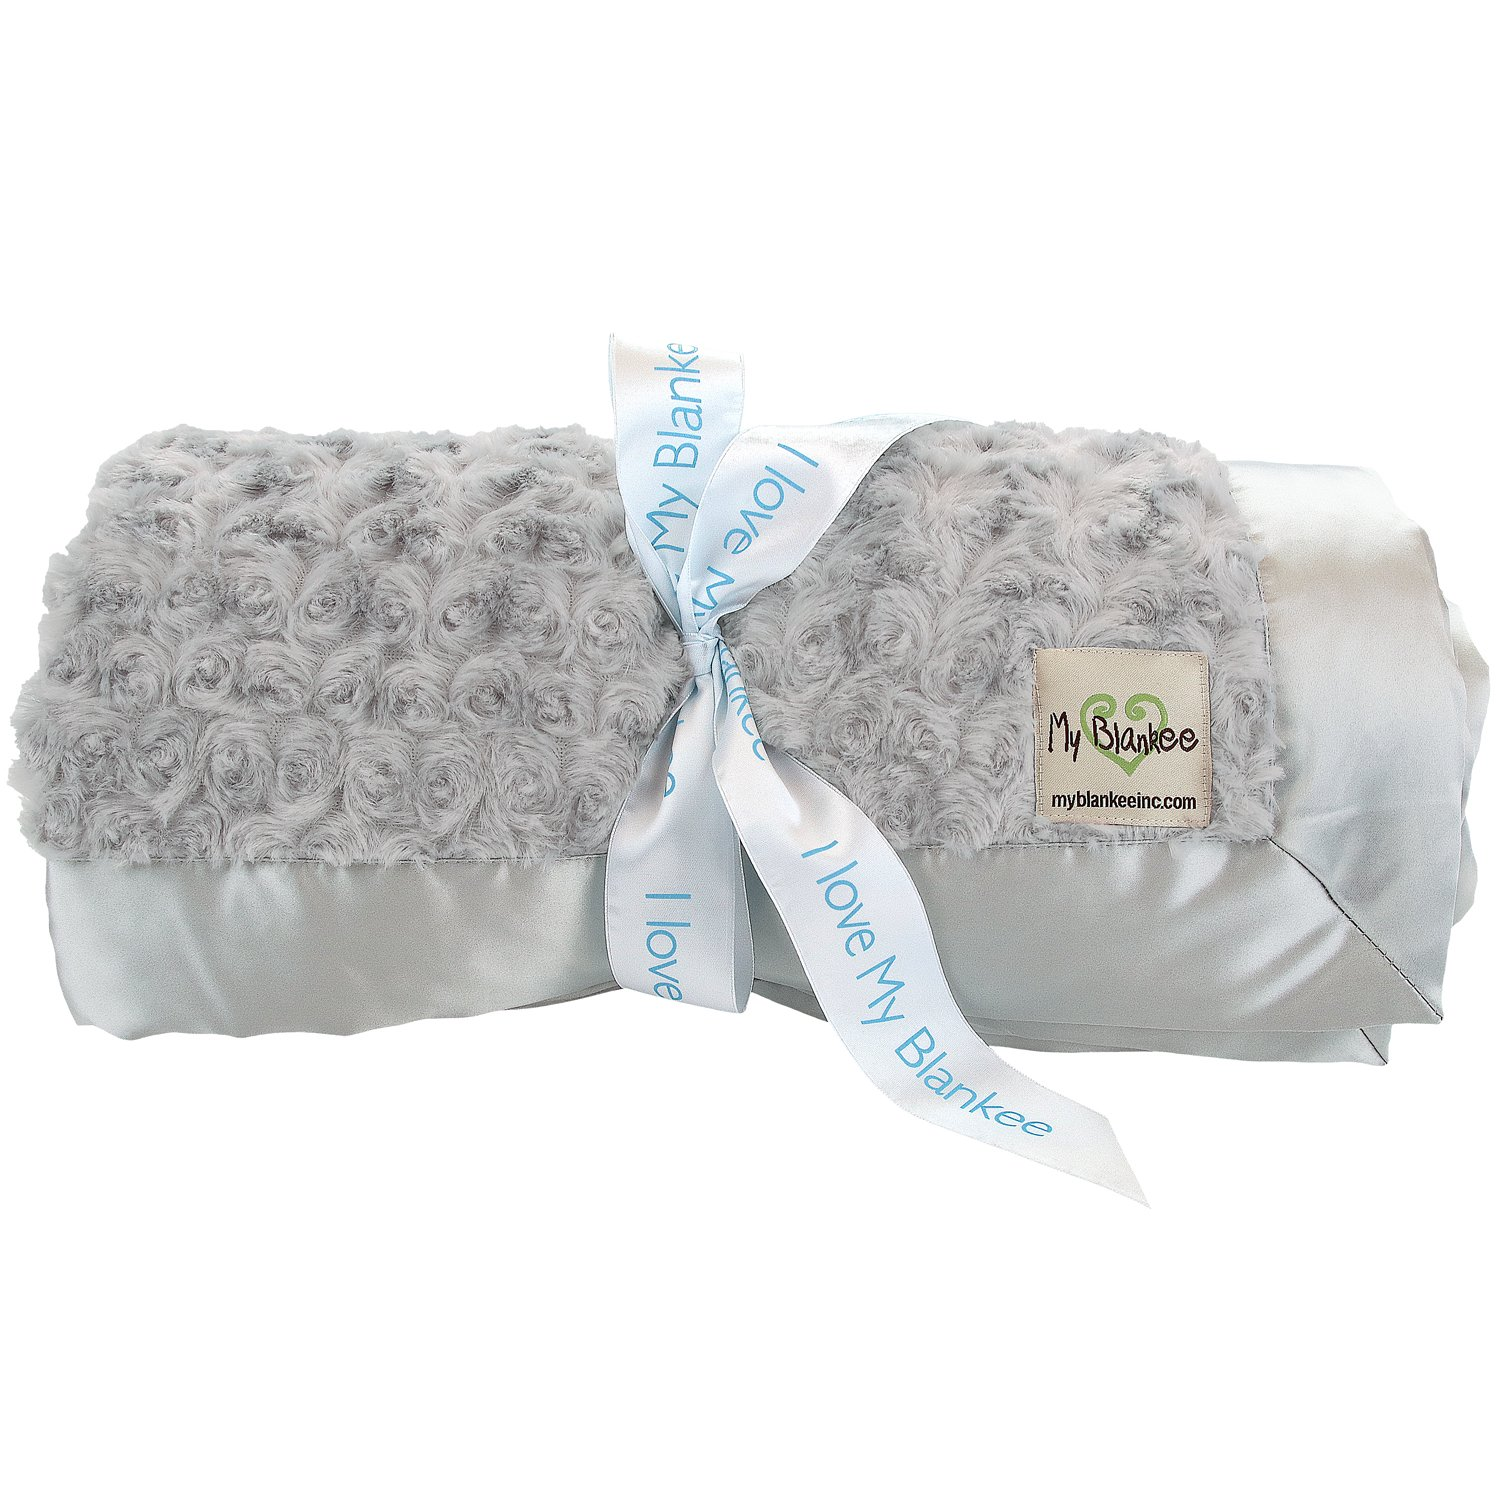 My Blankee Snail Luxe Throw Blanket with Flat Satin Border, Silver, 52'' X 60''